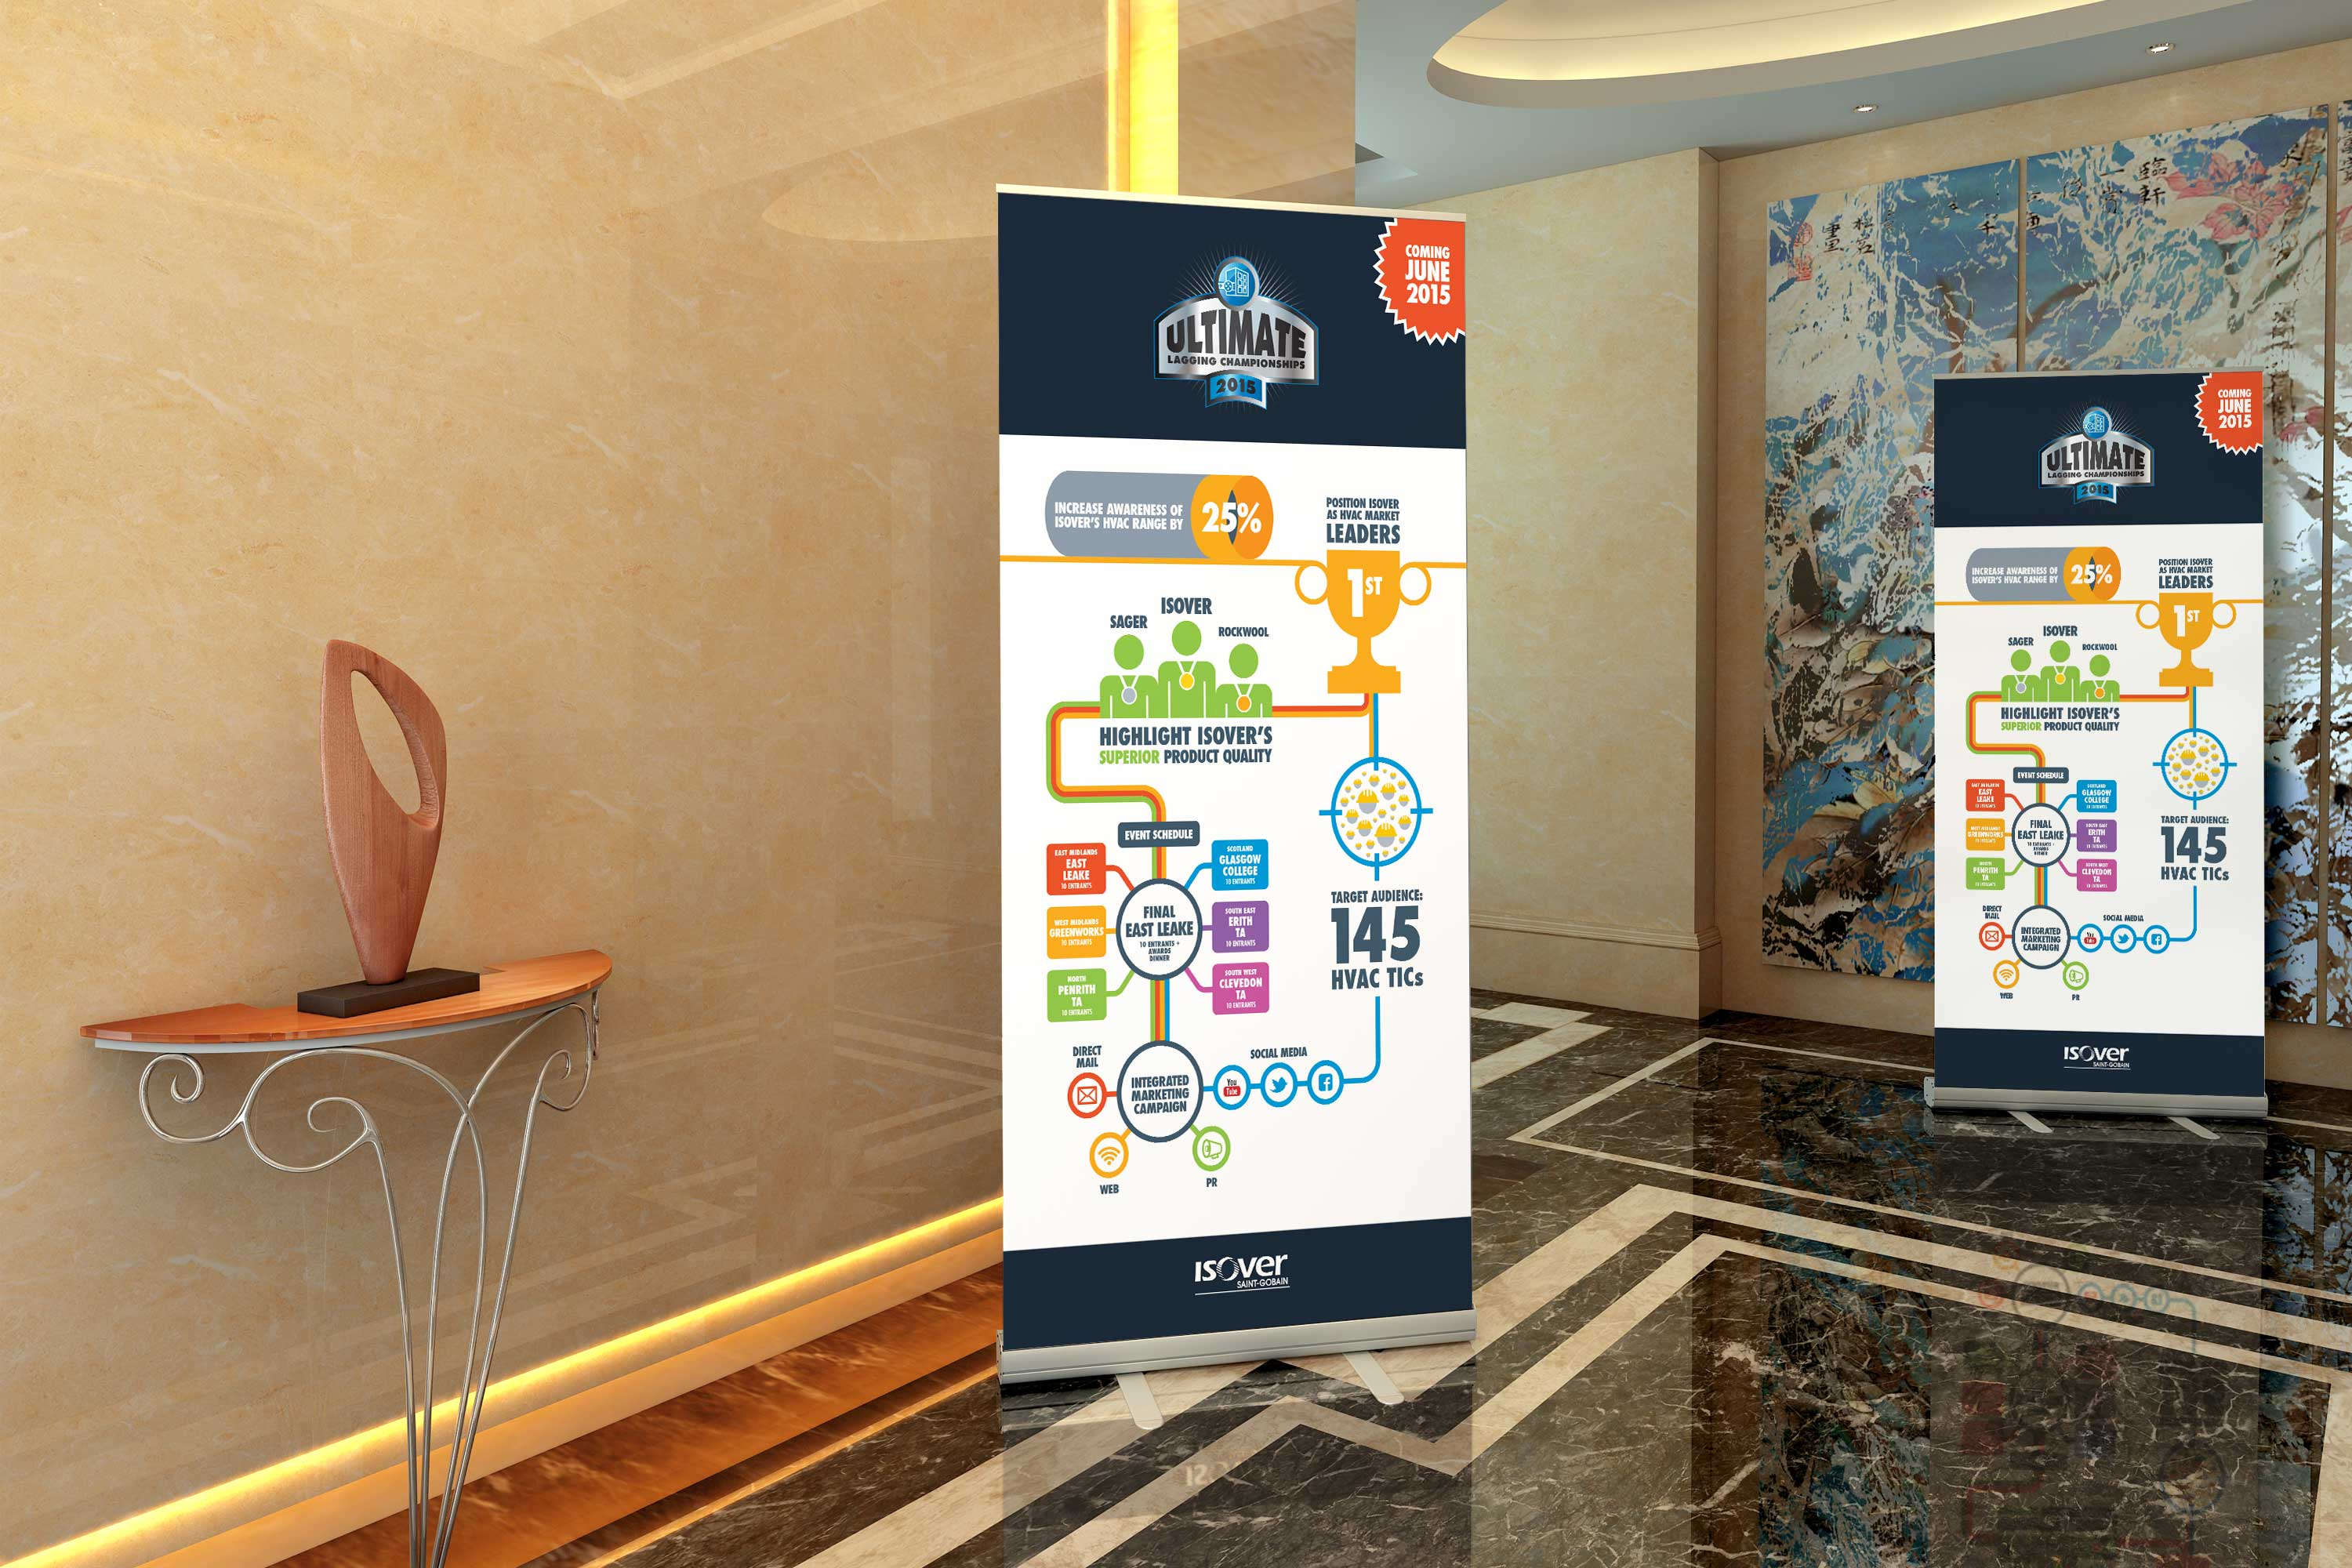 Isover Saint-Gobain Roller Banners